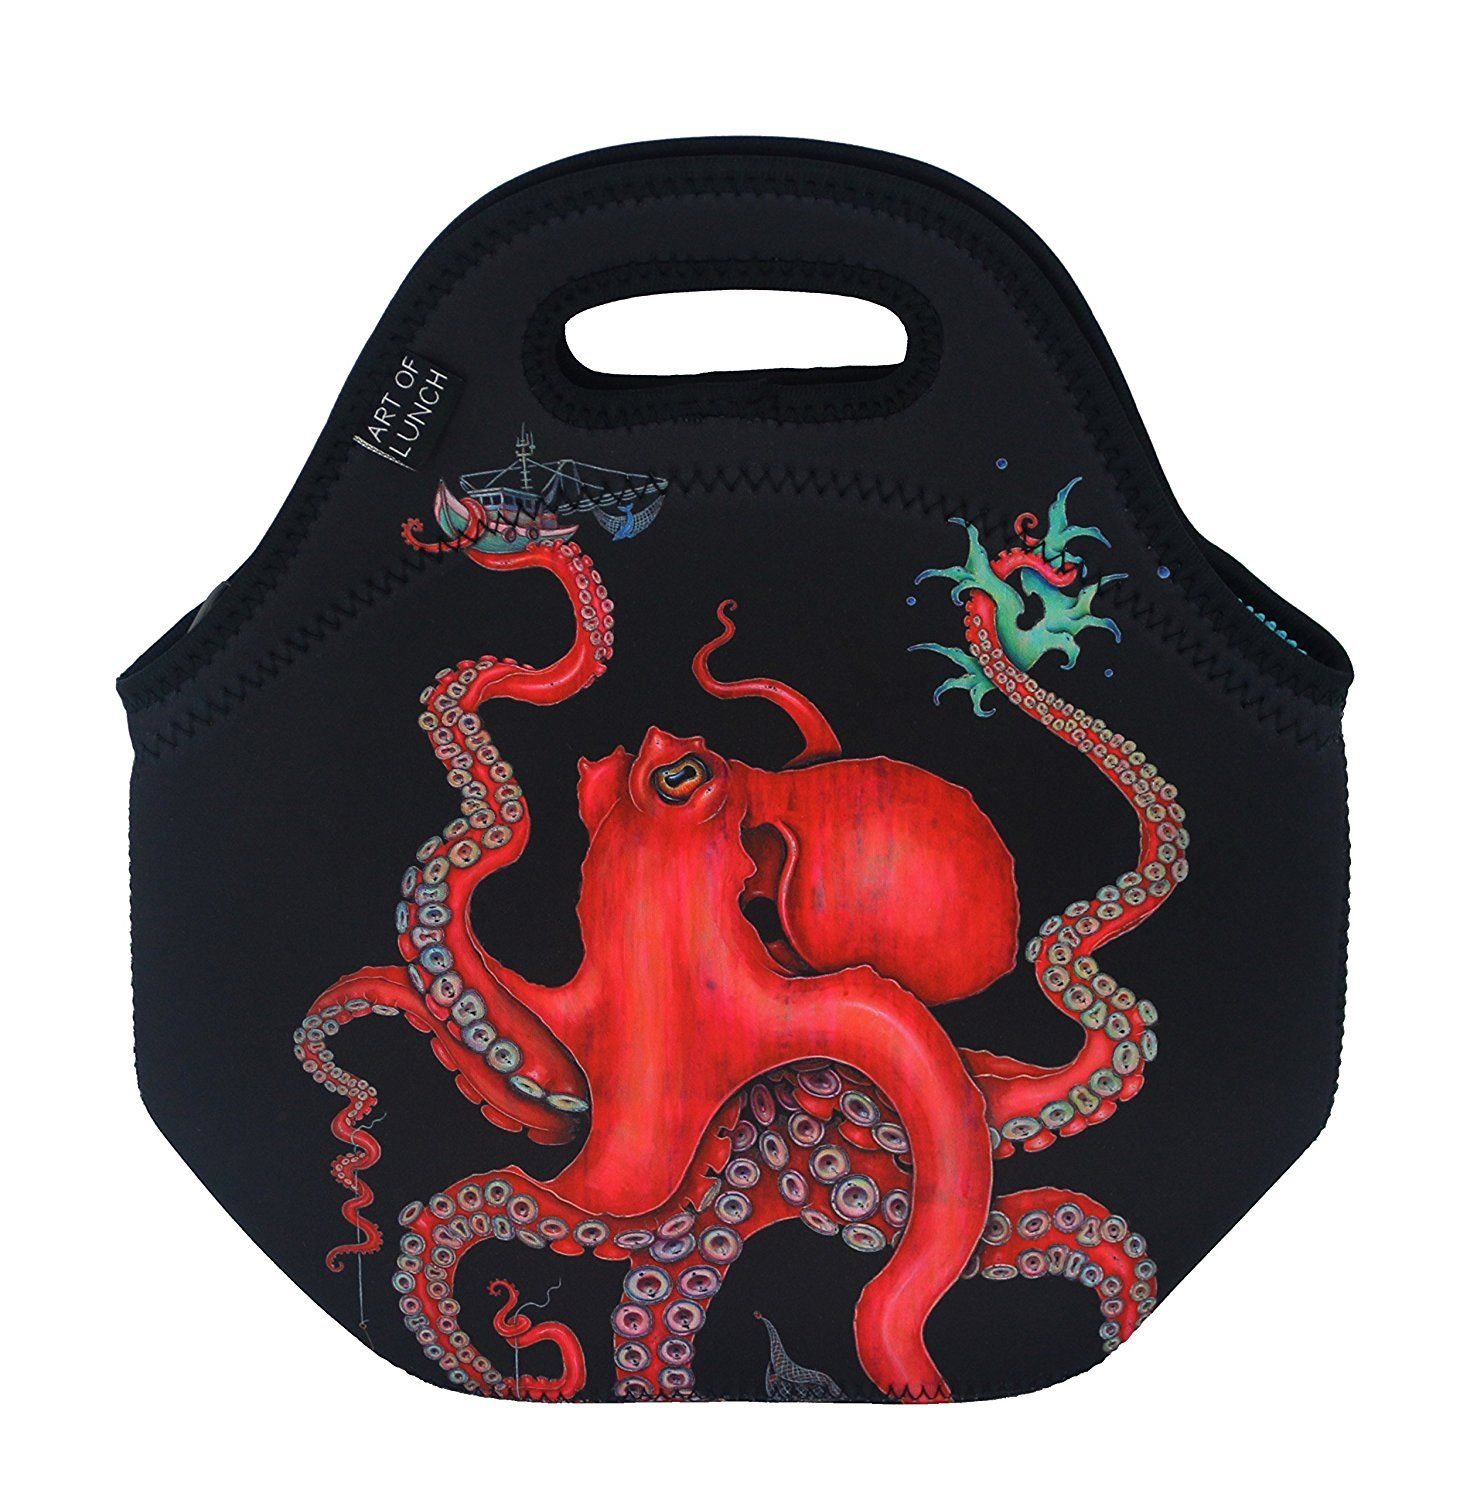 12c2adf1a101 Amazon.com: Neoprene Lunch Bag by ART OF LUNCH - Large [12